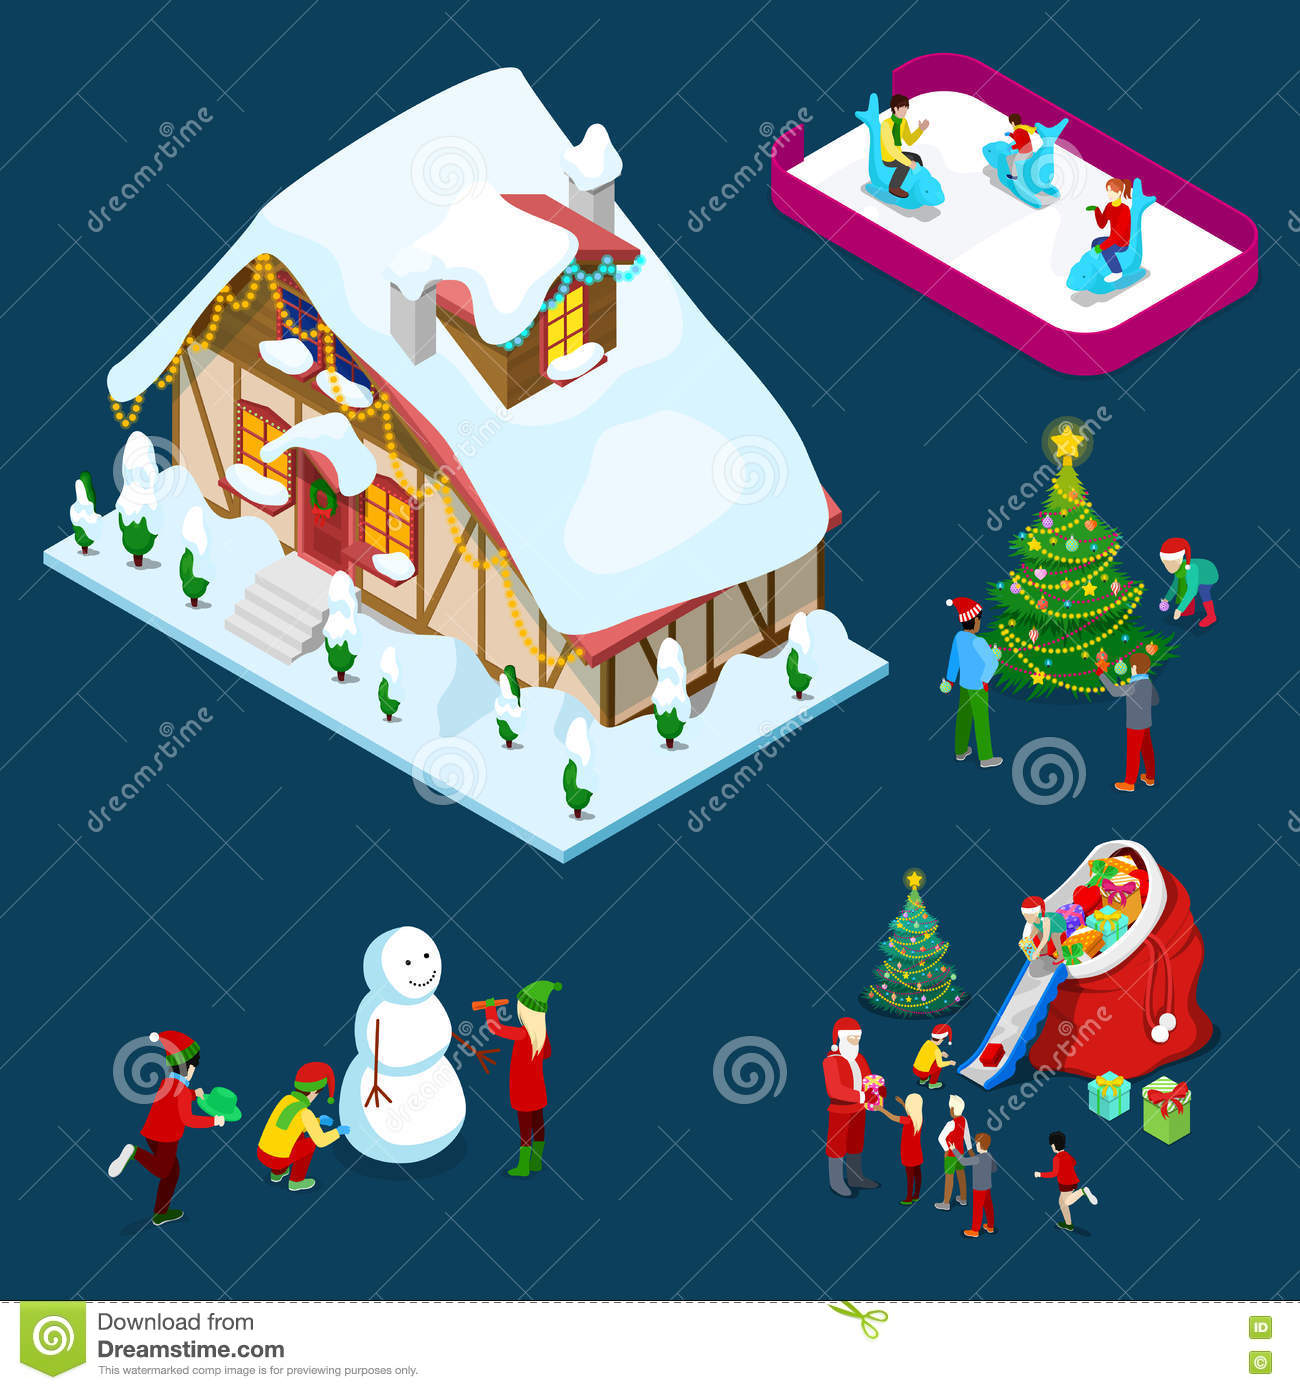 More similar stock images of 3d landscape with fall tree - Isometric Christmas Decorated House With Christmas Tree Santa Children And Snowman Royalty Free Stock